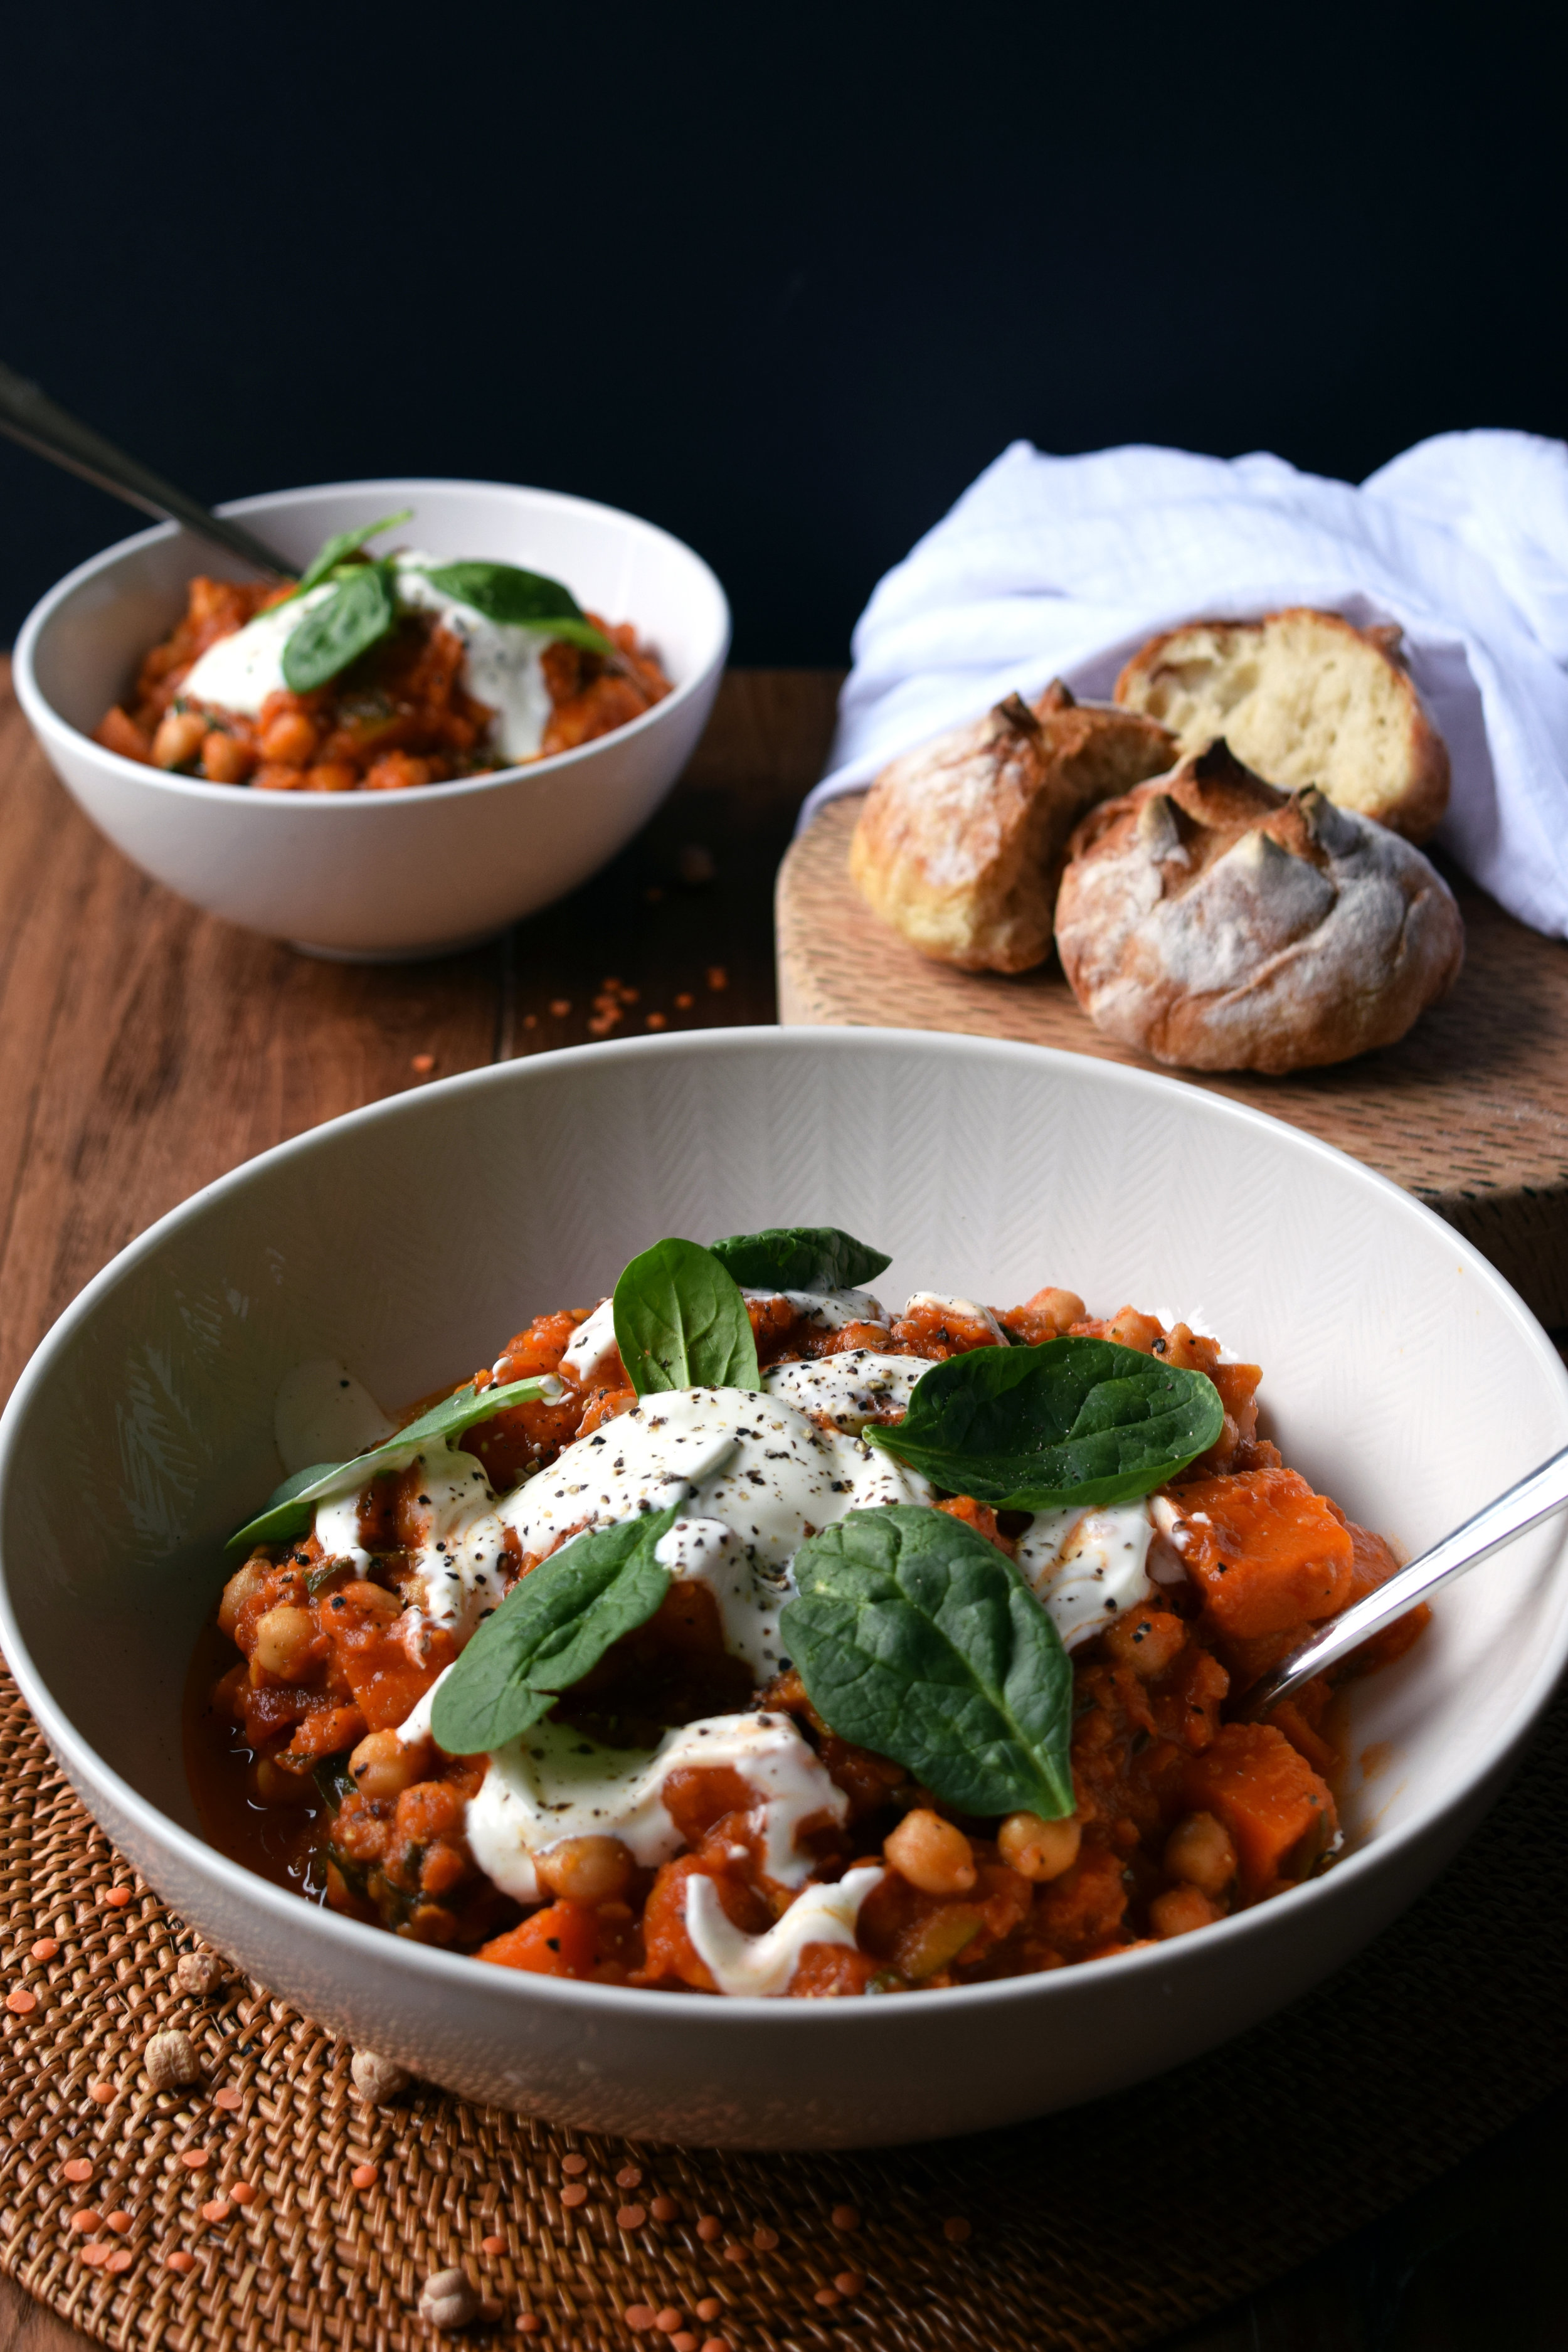 Sweet Potato, Chickpea and Lentil Stew